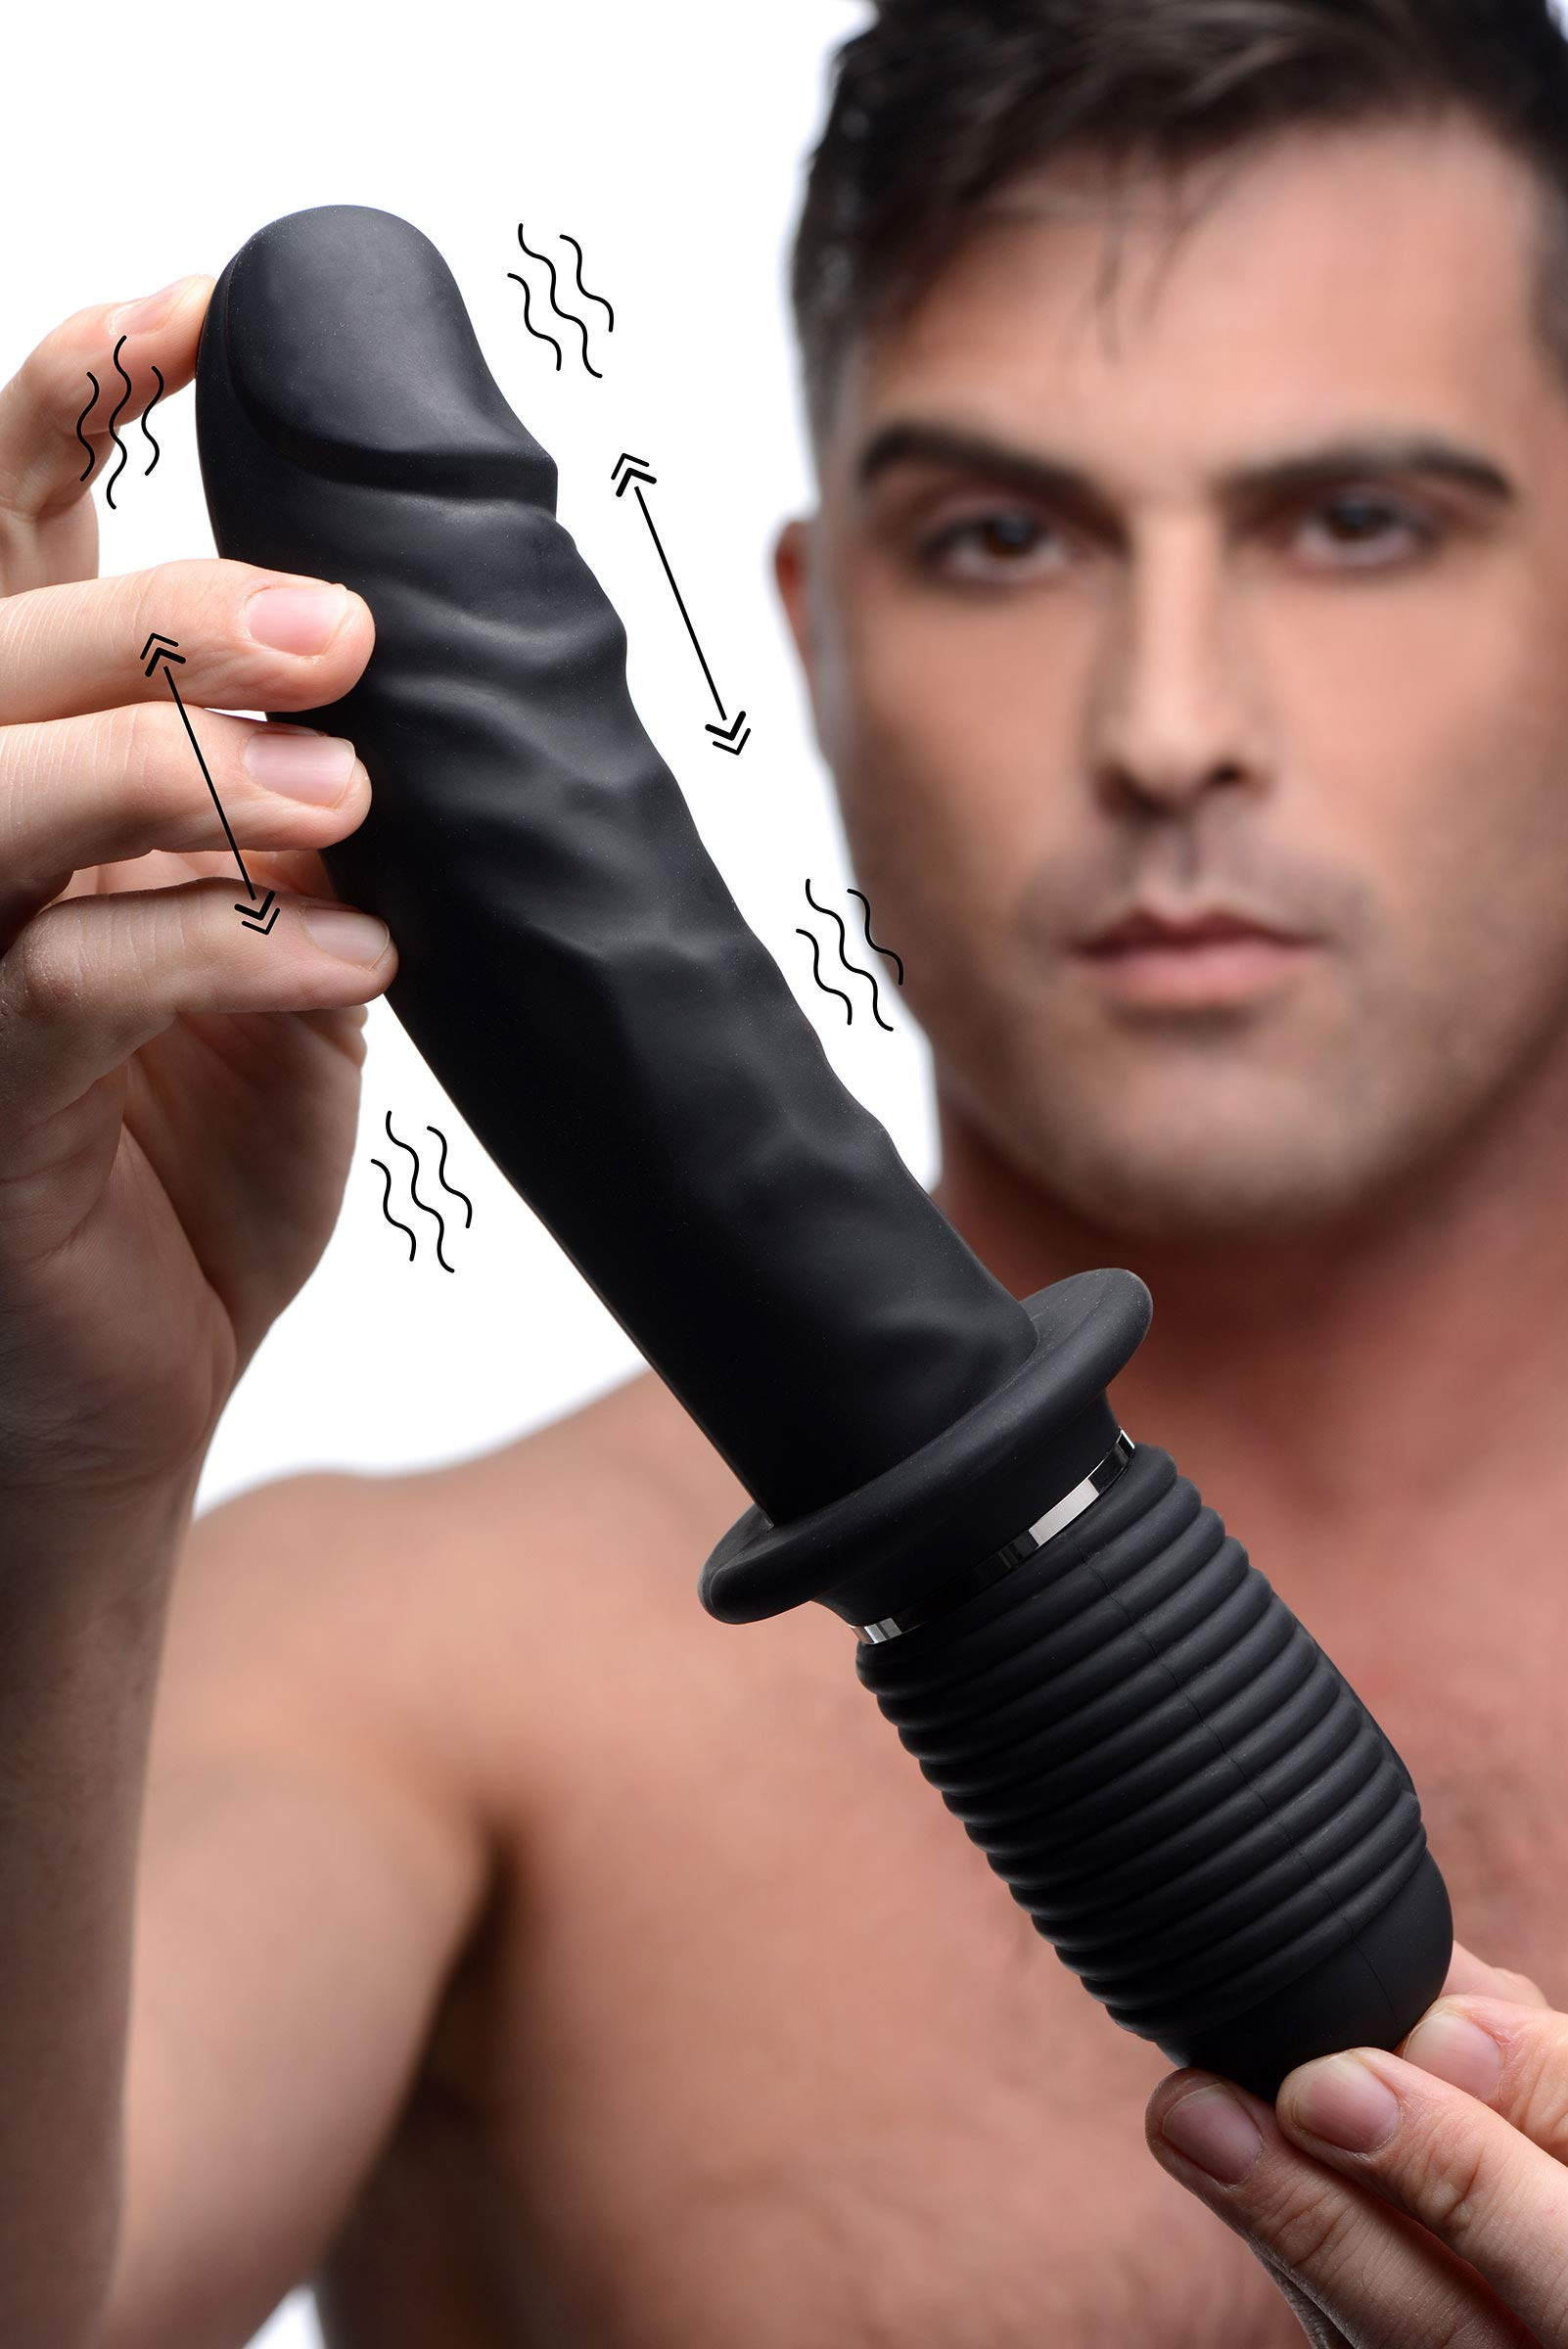 Master Series Power Pounder Vibrating and Thrusting Silicone Dildo